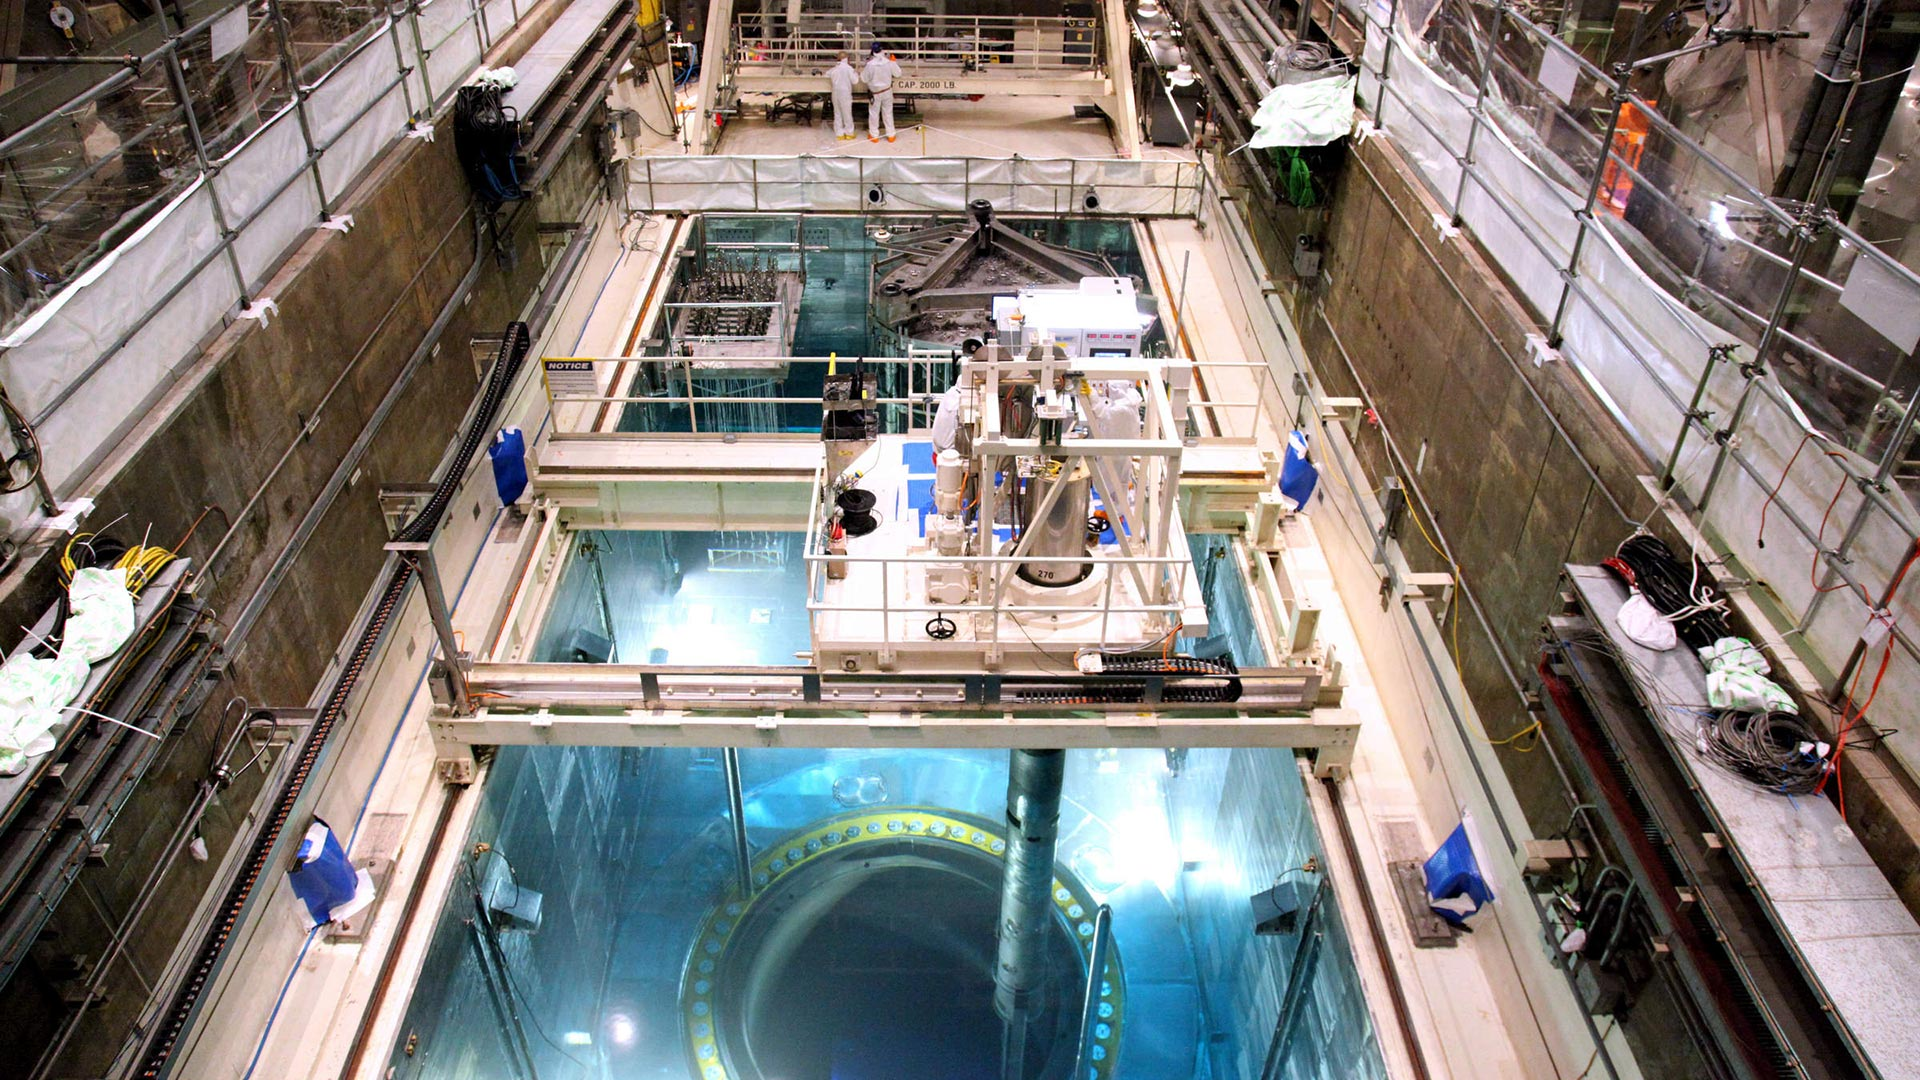 The deep blue of Cherenkov radiation reveals the location of the fuel assemblies within the open reactor core (foreground). The tube beneath the platform, a tube-shaped fuel handling machine extracts one of these assemblies.